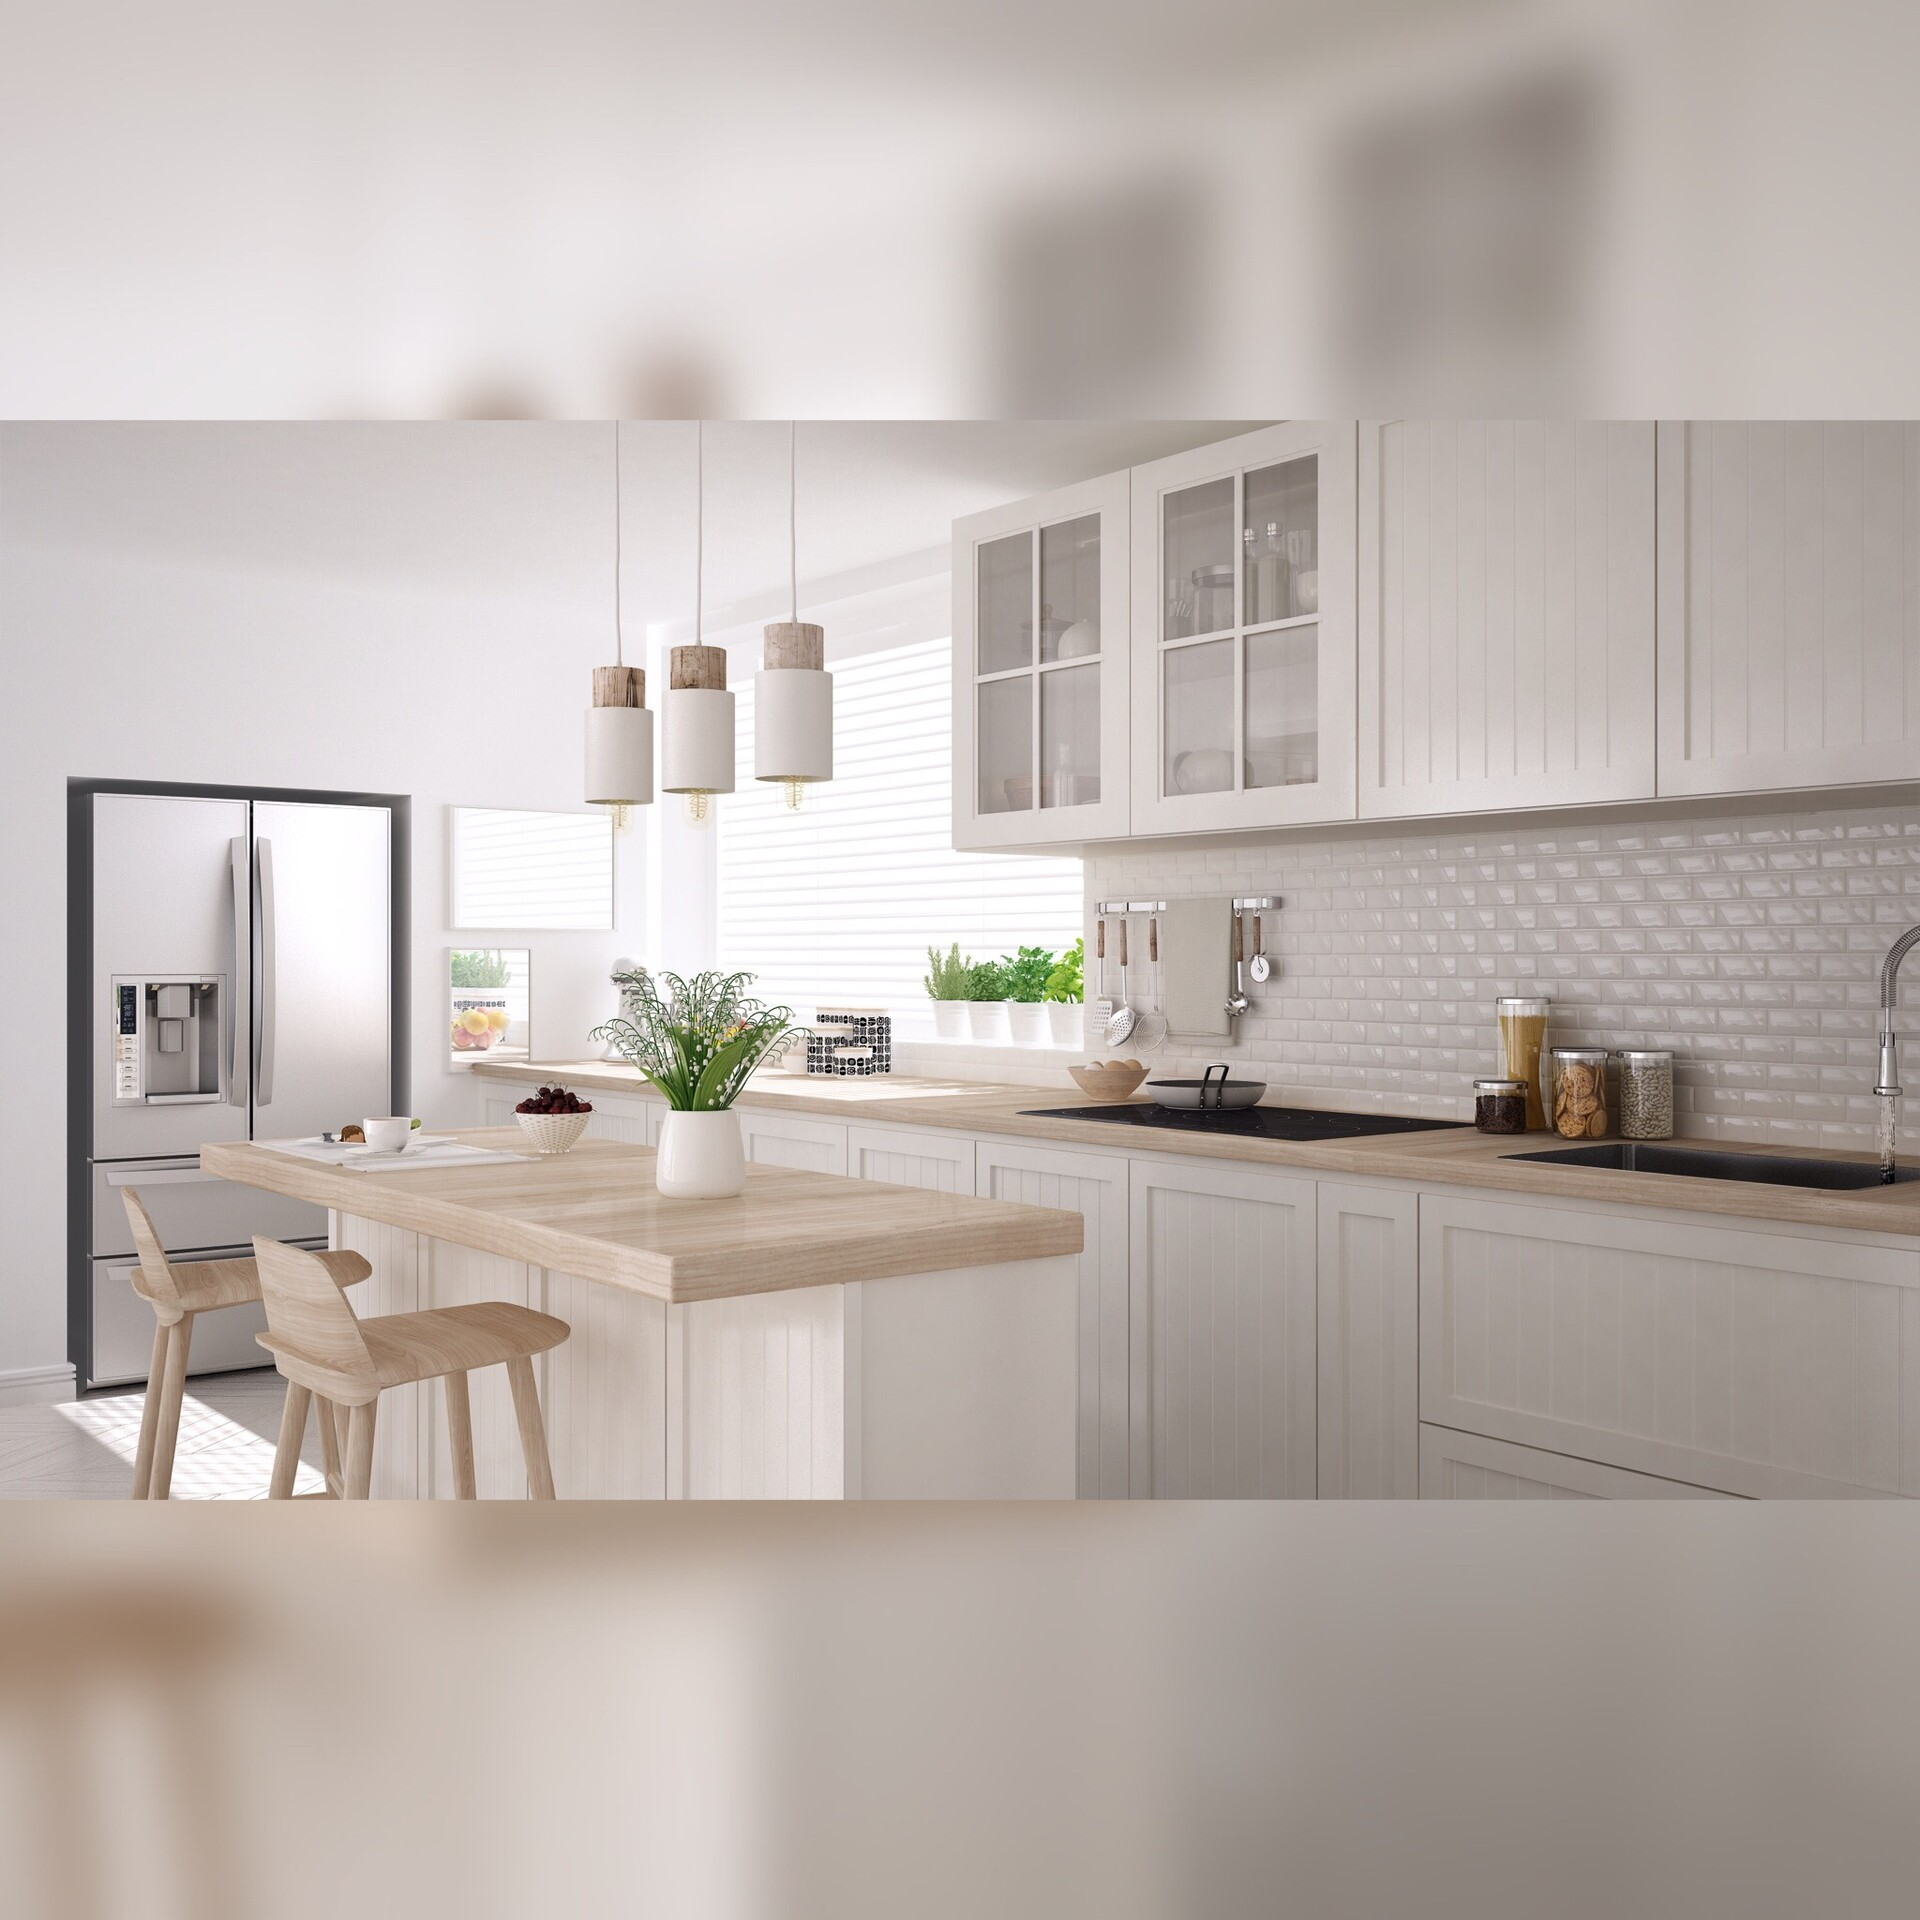 Andrea Zen Kitchen Design Render